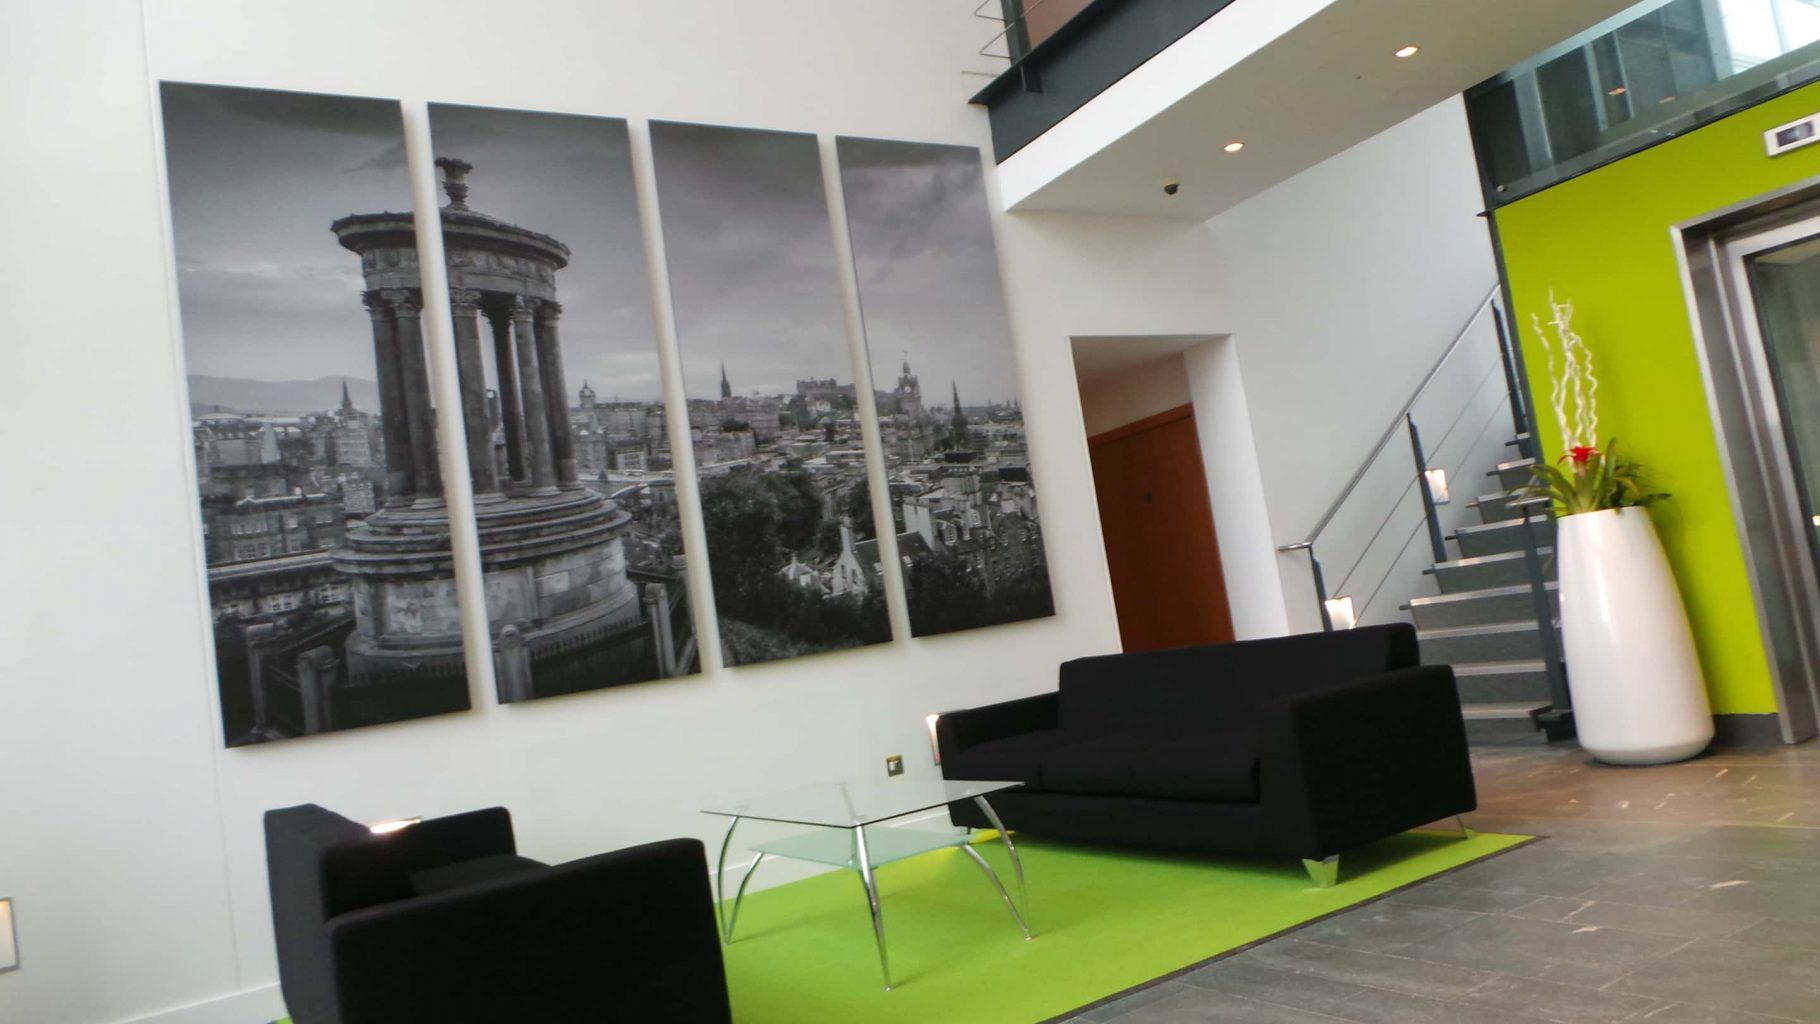 Design agency Wall mounted image